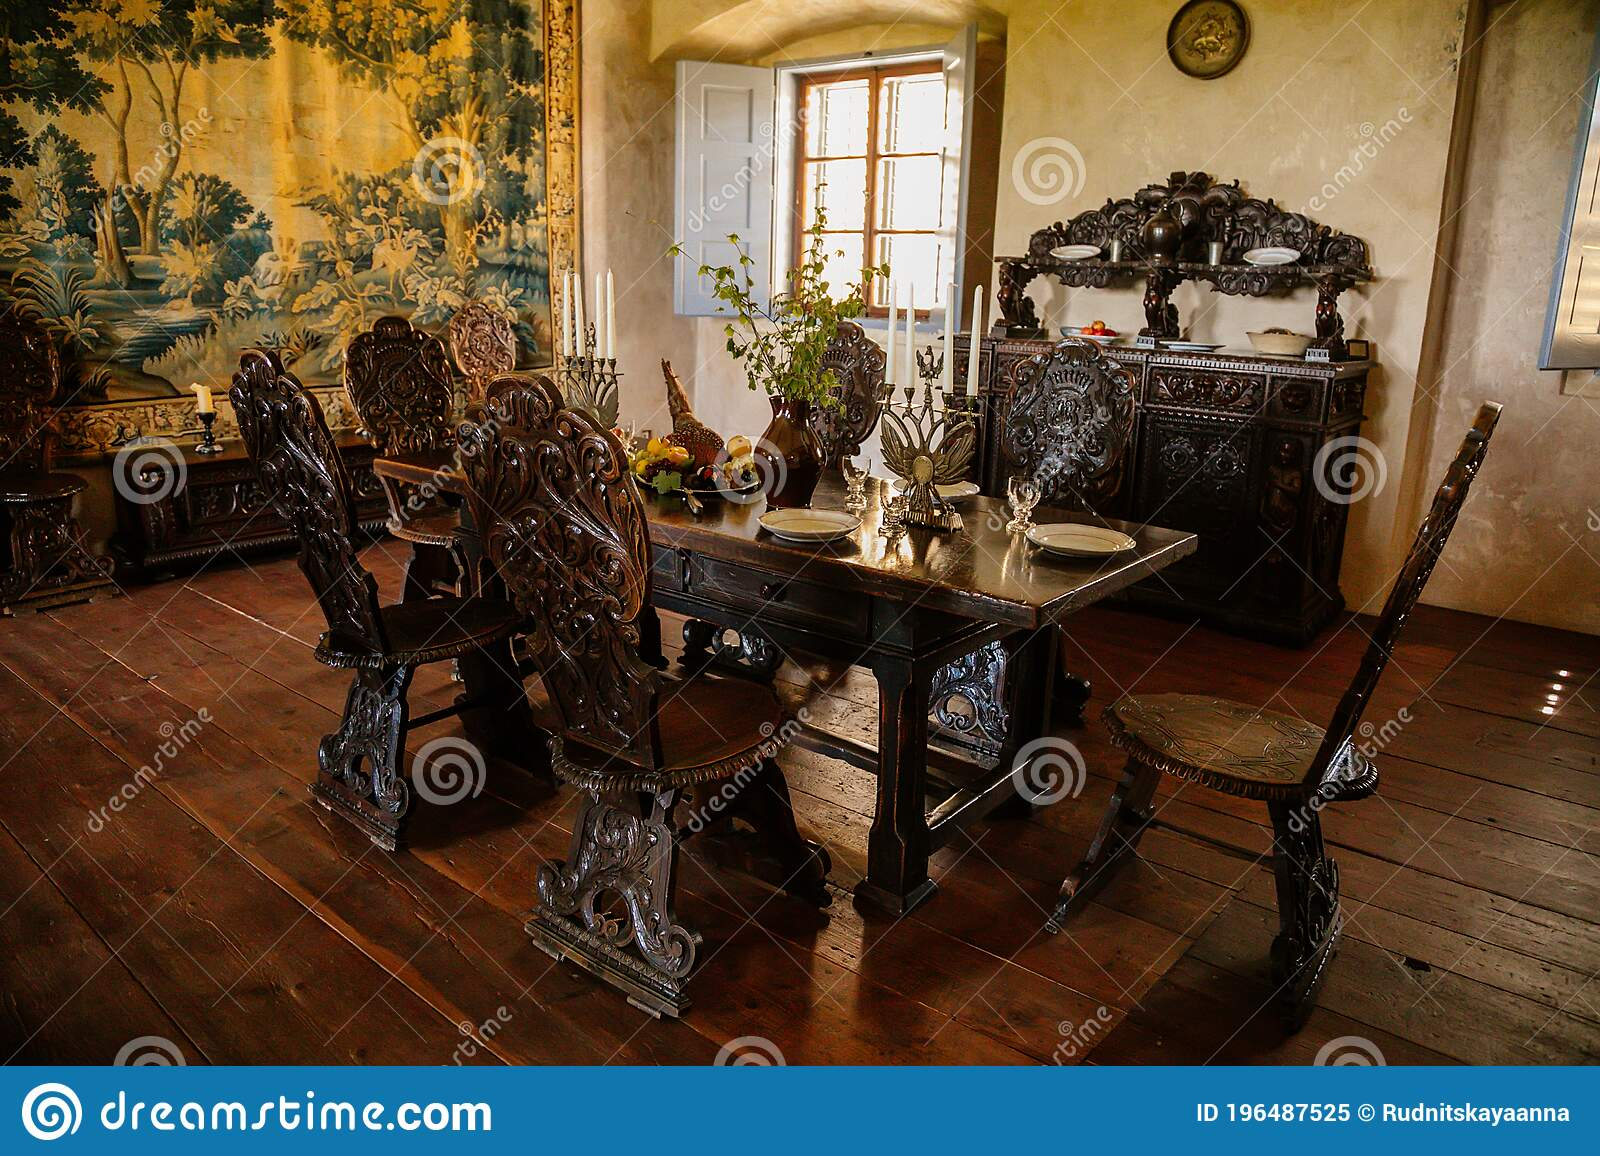 Castle Interior Old Dining Room With Renaissance Furniture Table And Chairs Castle Grabstejn Ancient Medieval Gothic Chateau Editorial Image Image Of Beauty Interior 196487525